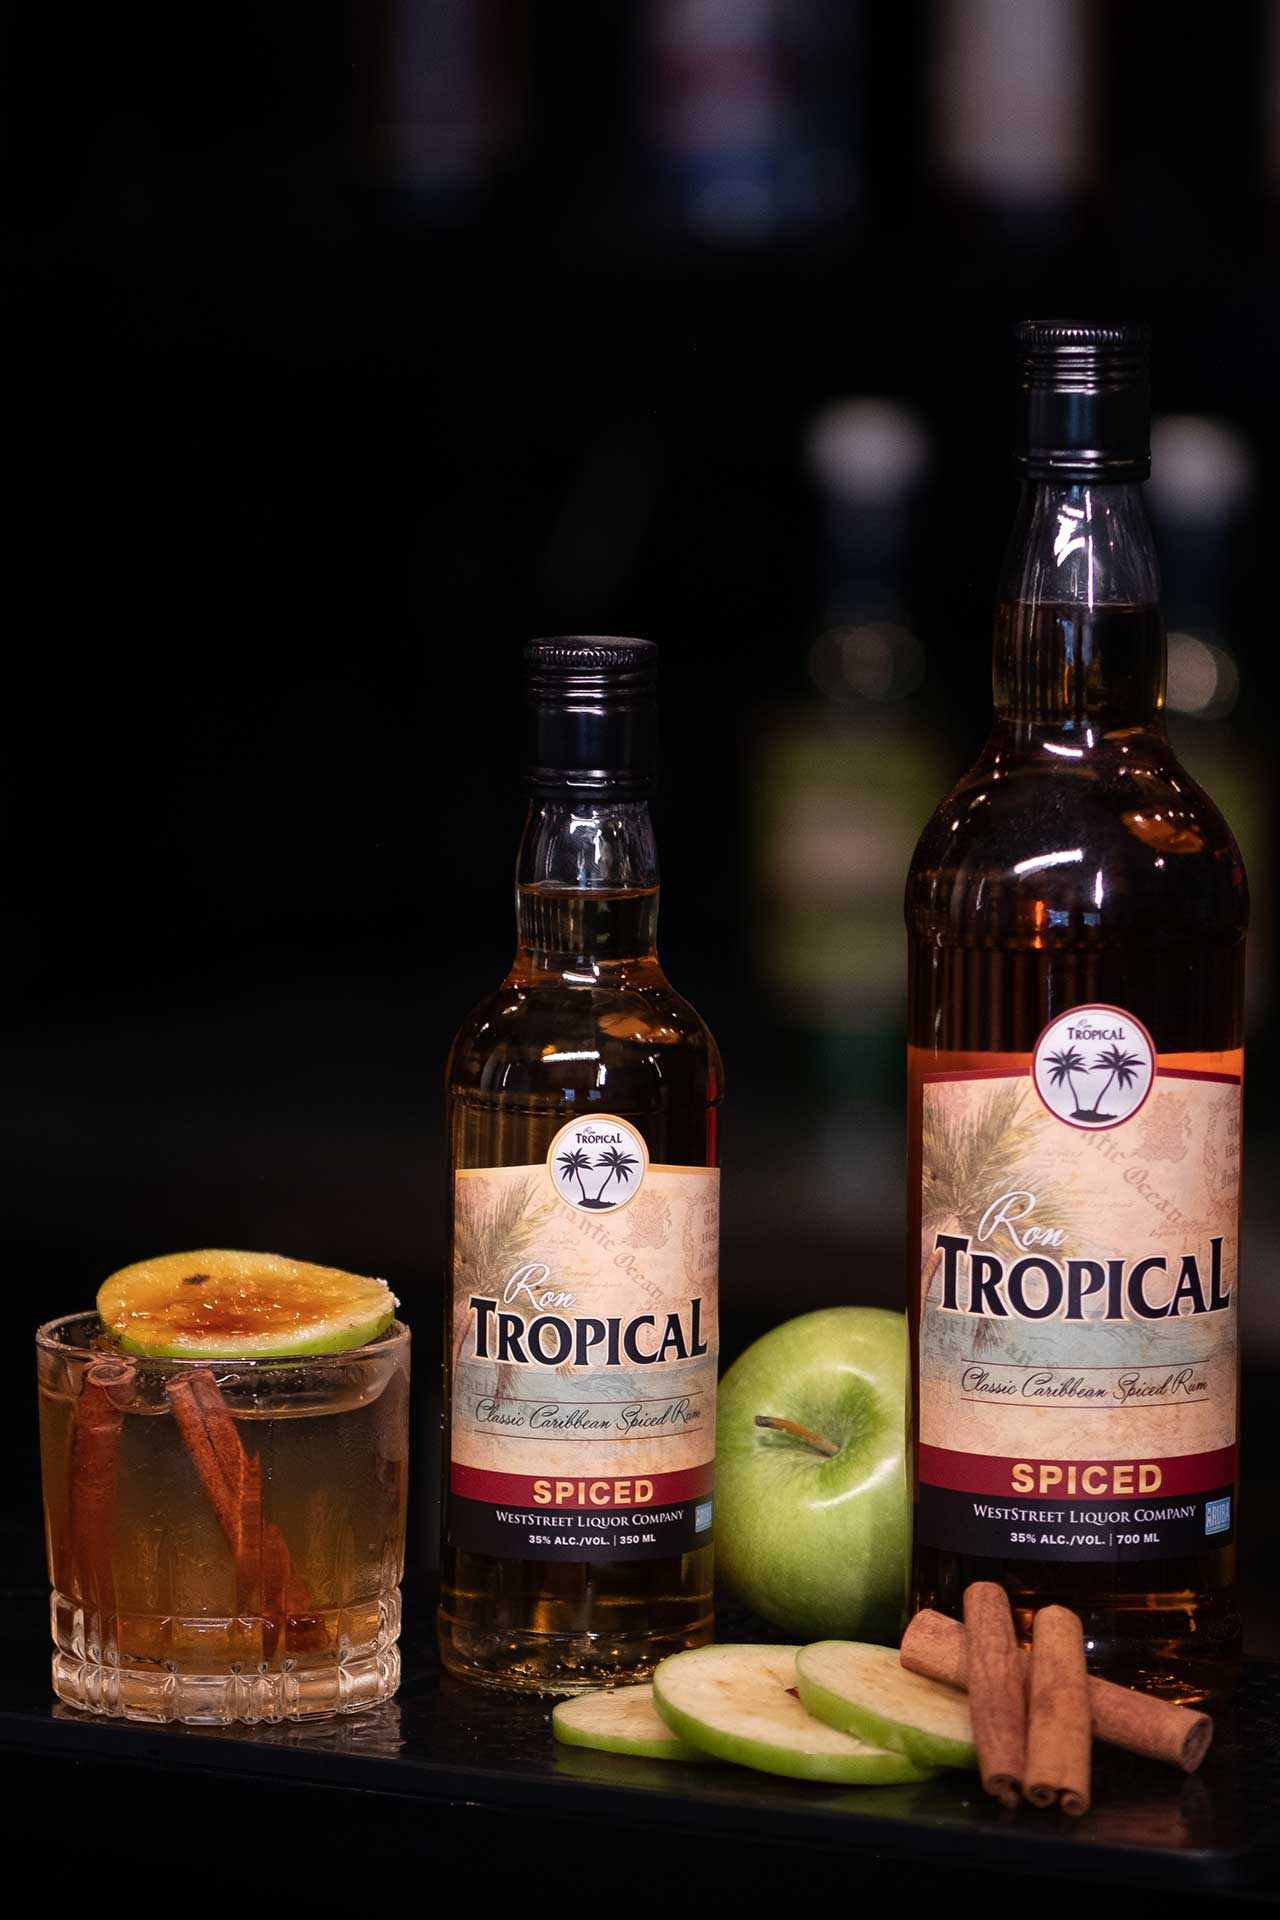 https://weststreetliquorcompany.com/wp-content/uploads/2020/02/Apple-Spiced-Old-Fashioned.jpg